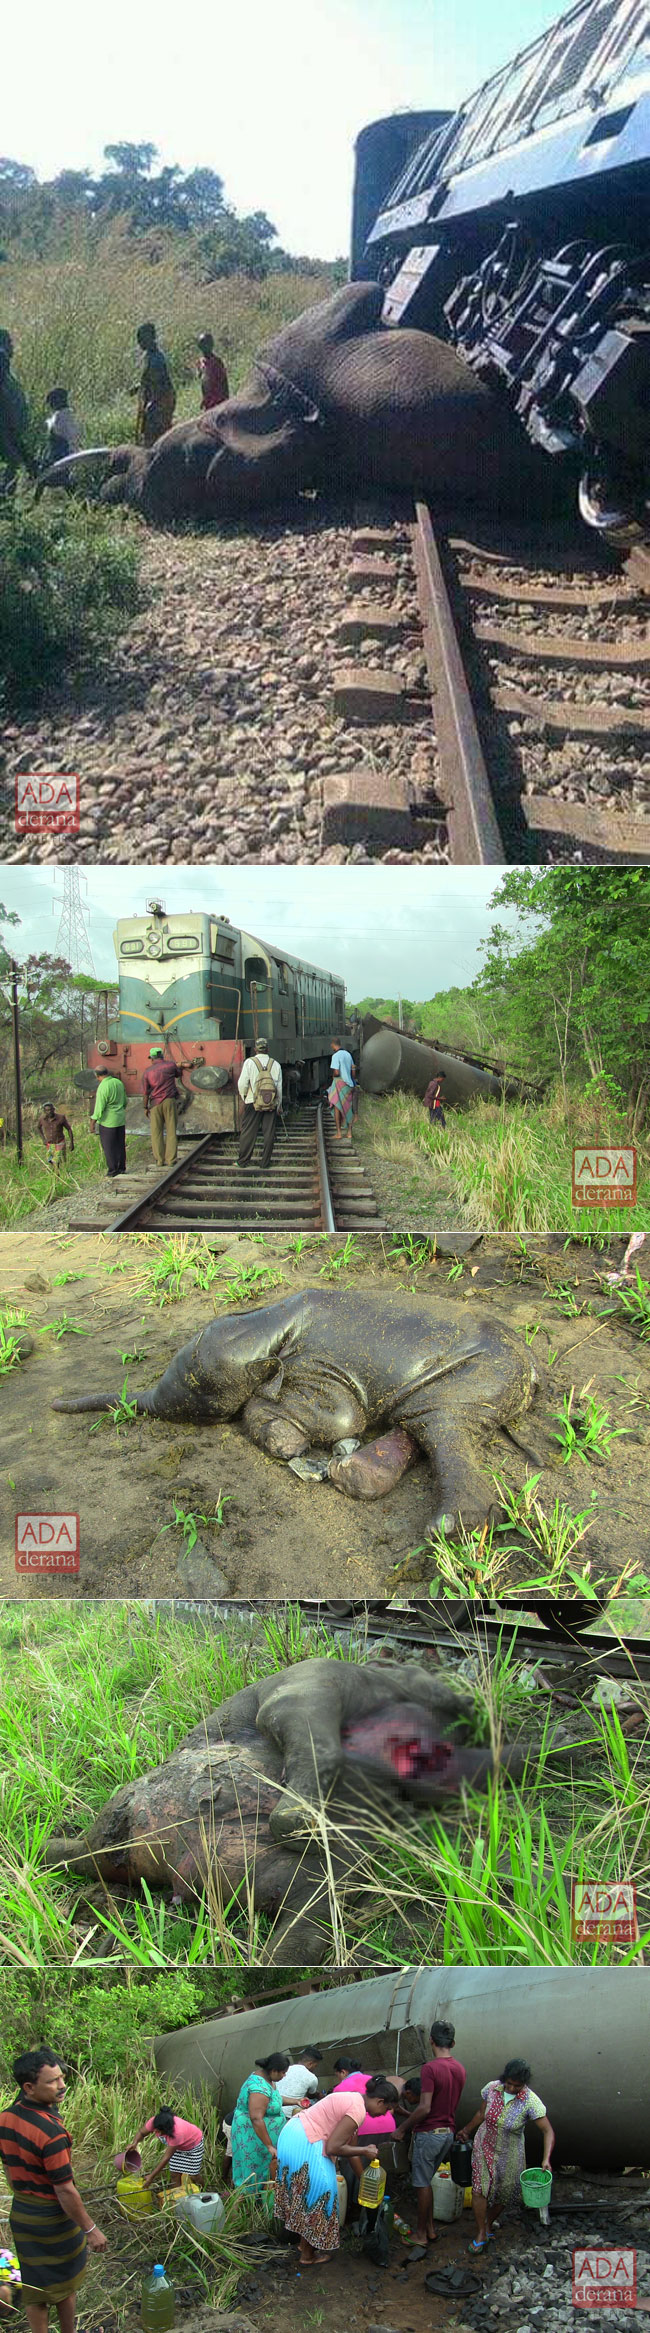 Three elephants killed by train in Habarana